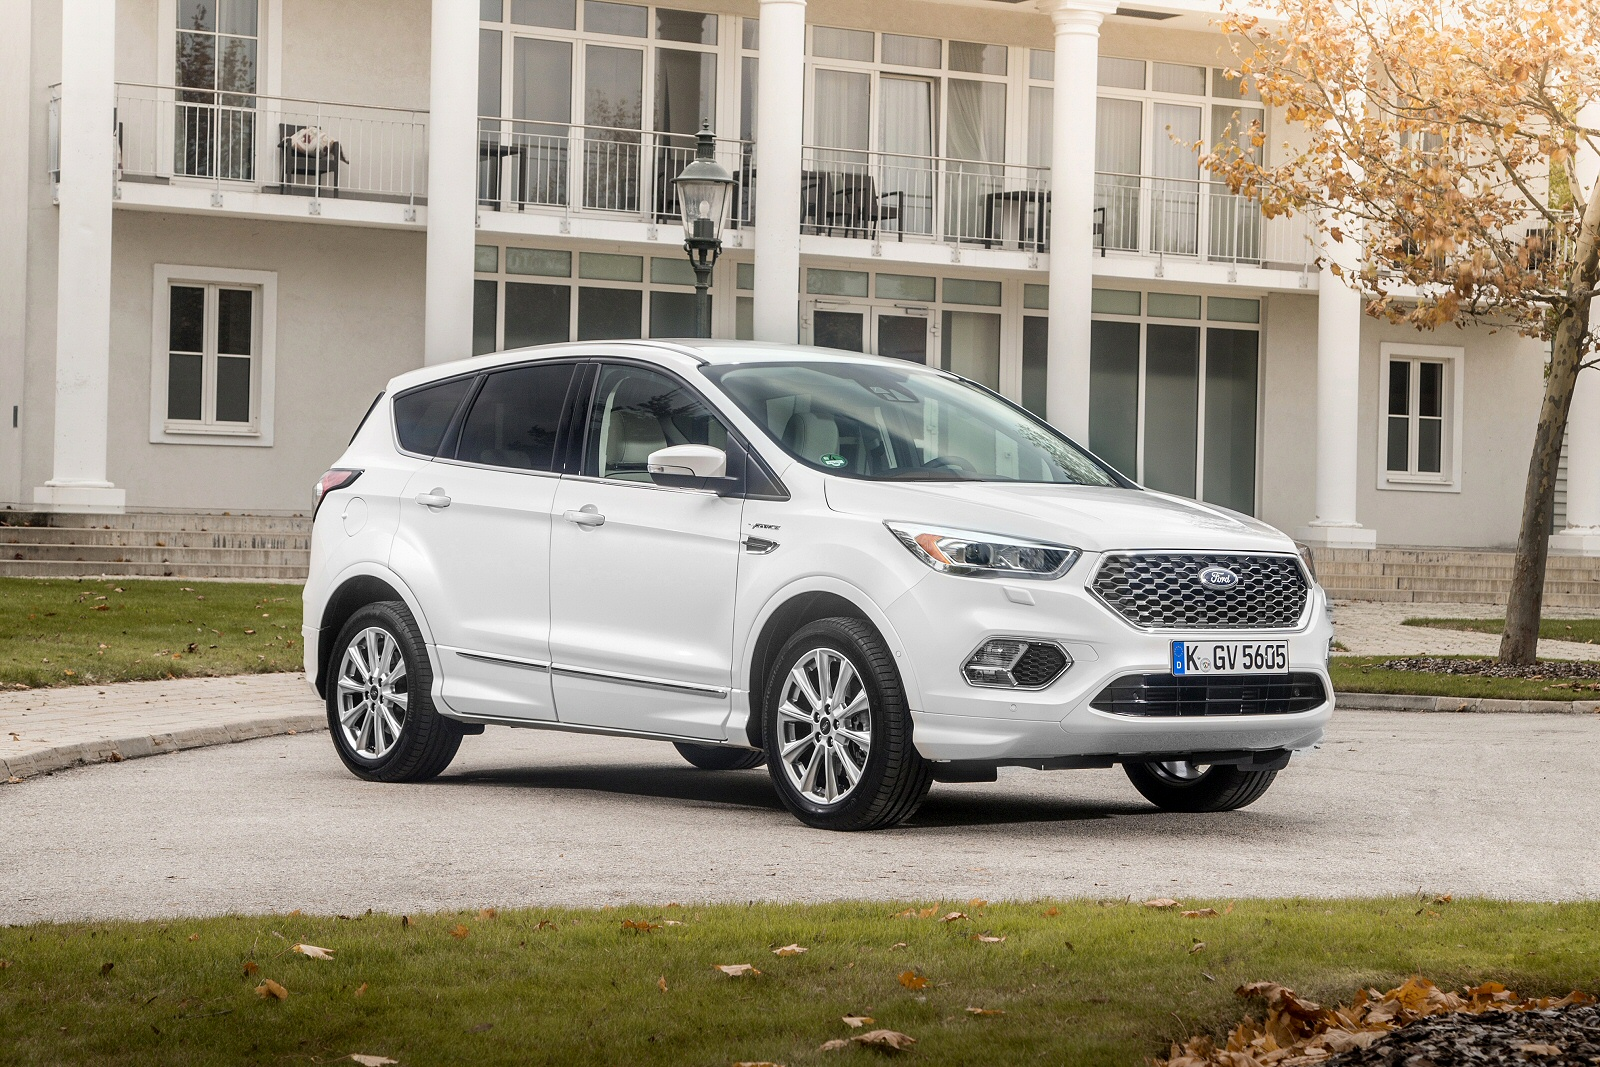 New Ford Kuga Vignale   Dr Autosel Estate For Sale Bristol Street